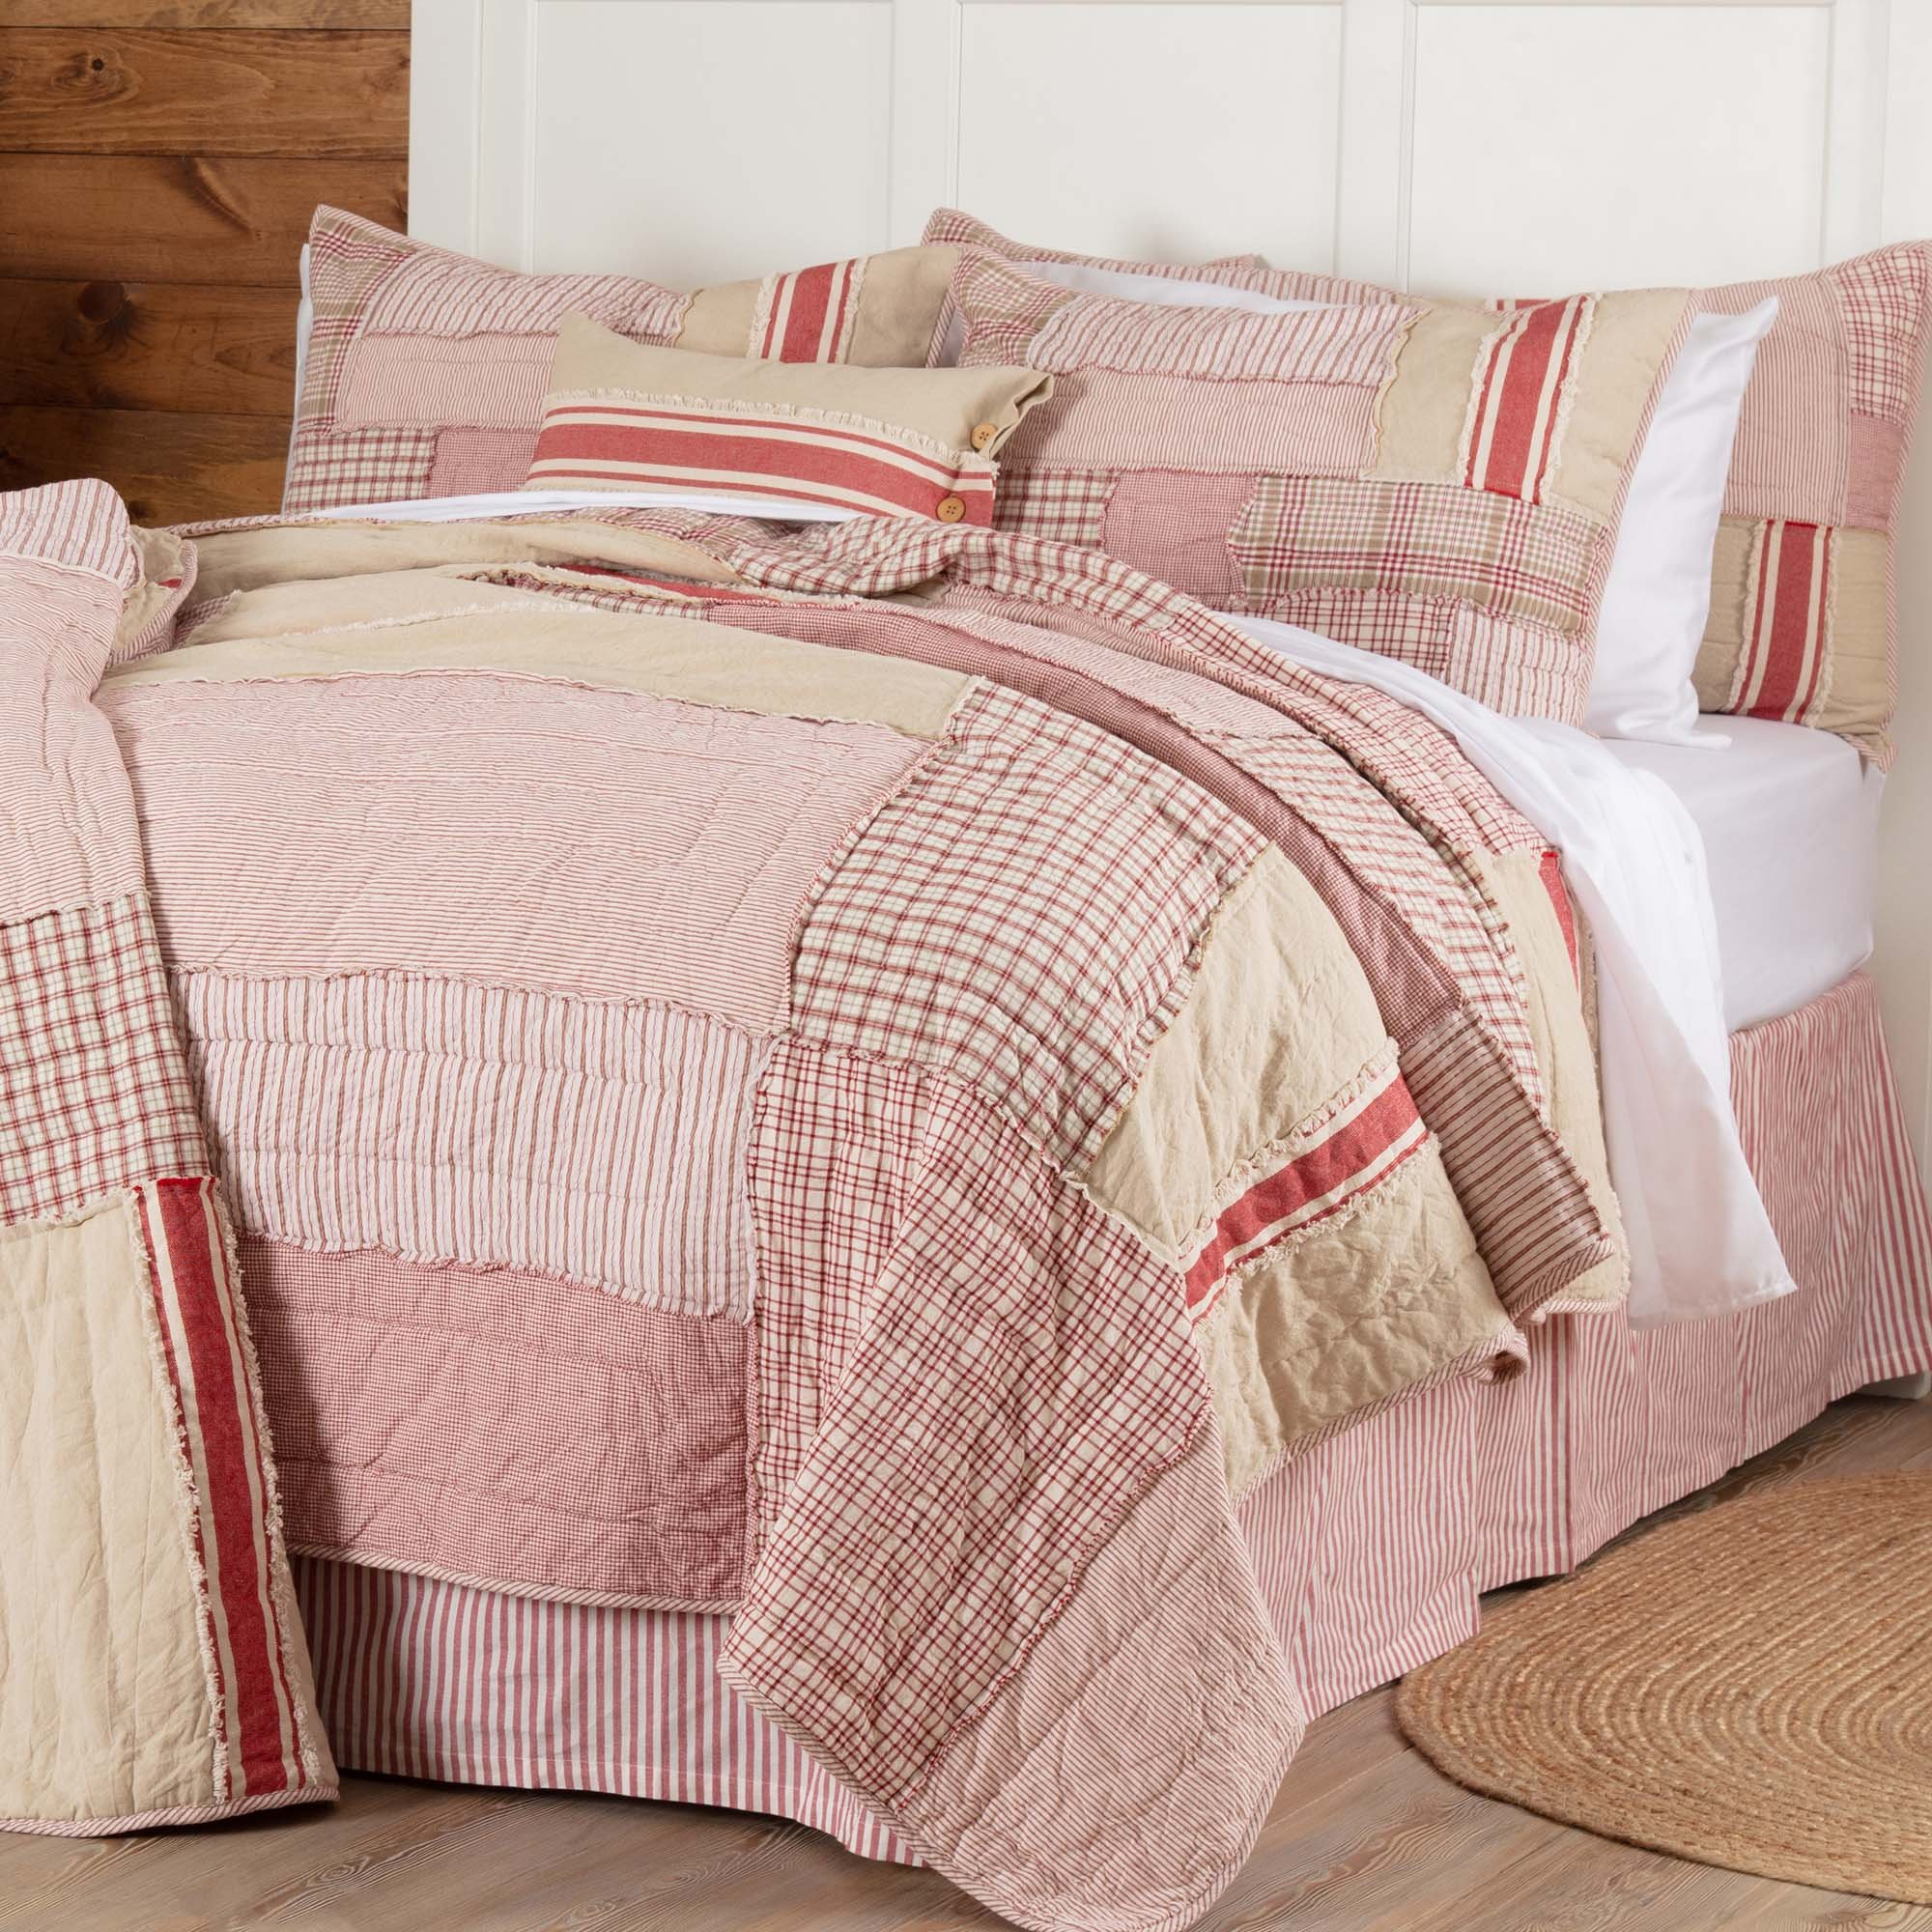 Piper Classics Mill Creek Red Quilt, Queen Size 90'' x 90'', Country Farmhouse Bedding, Beautiful Country Christmas Quilt, Grain Sack, Ticking Stripe, and Plaid Fabrics, 100% Cotton